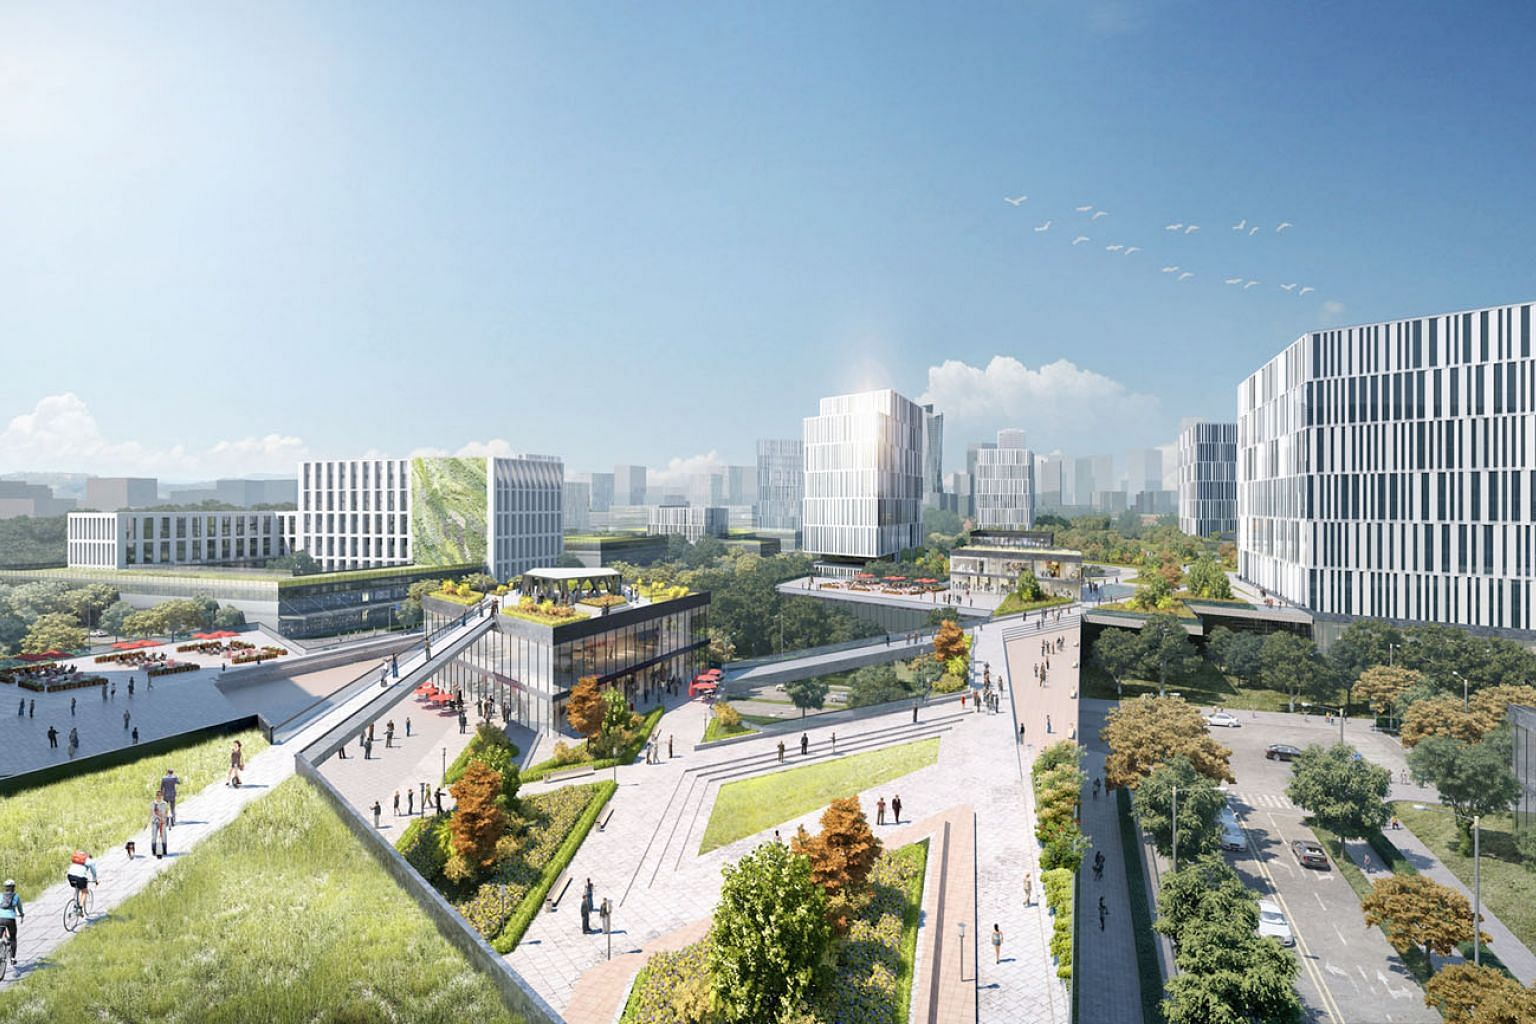 The New Clark City in the Philippines is envisioned as an alternative to congested capital Manila. The smart use of data and digital technologies can significantly alleviate some of the challenges of urbanisation, and Asean members are recognising th